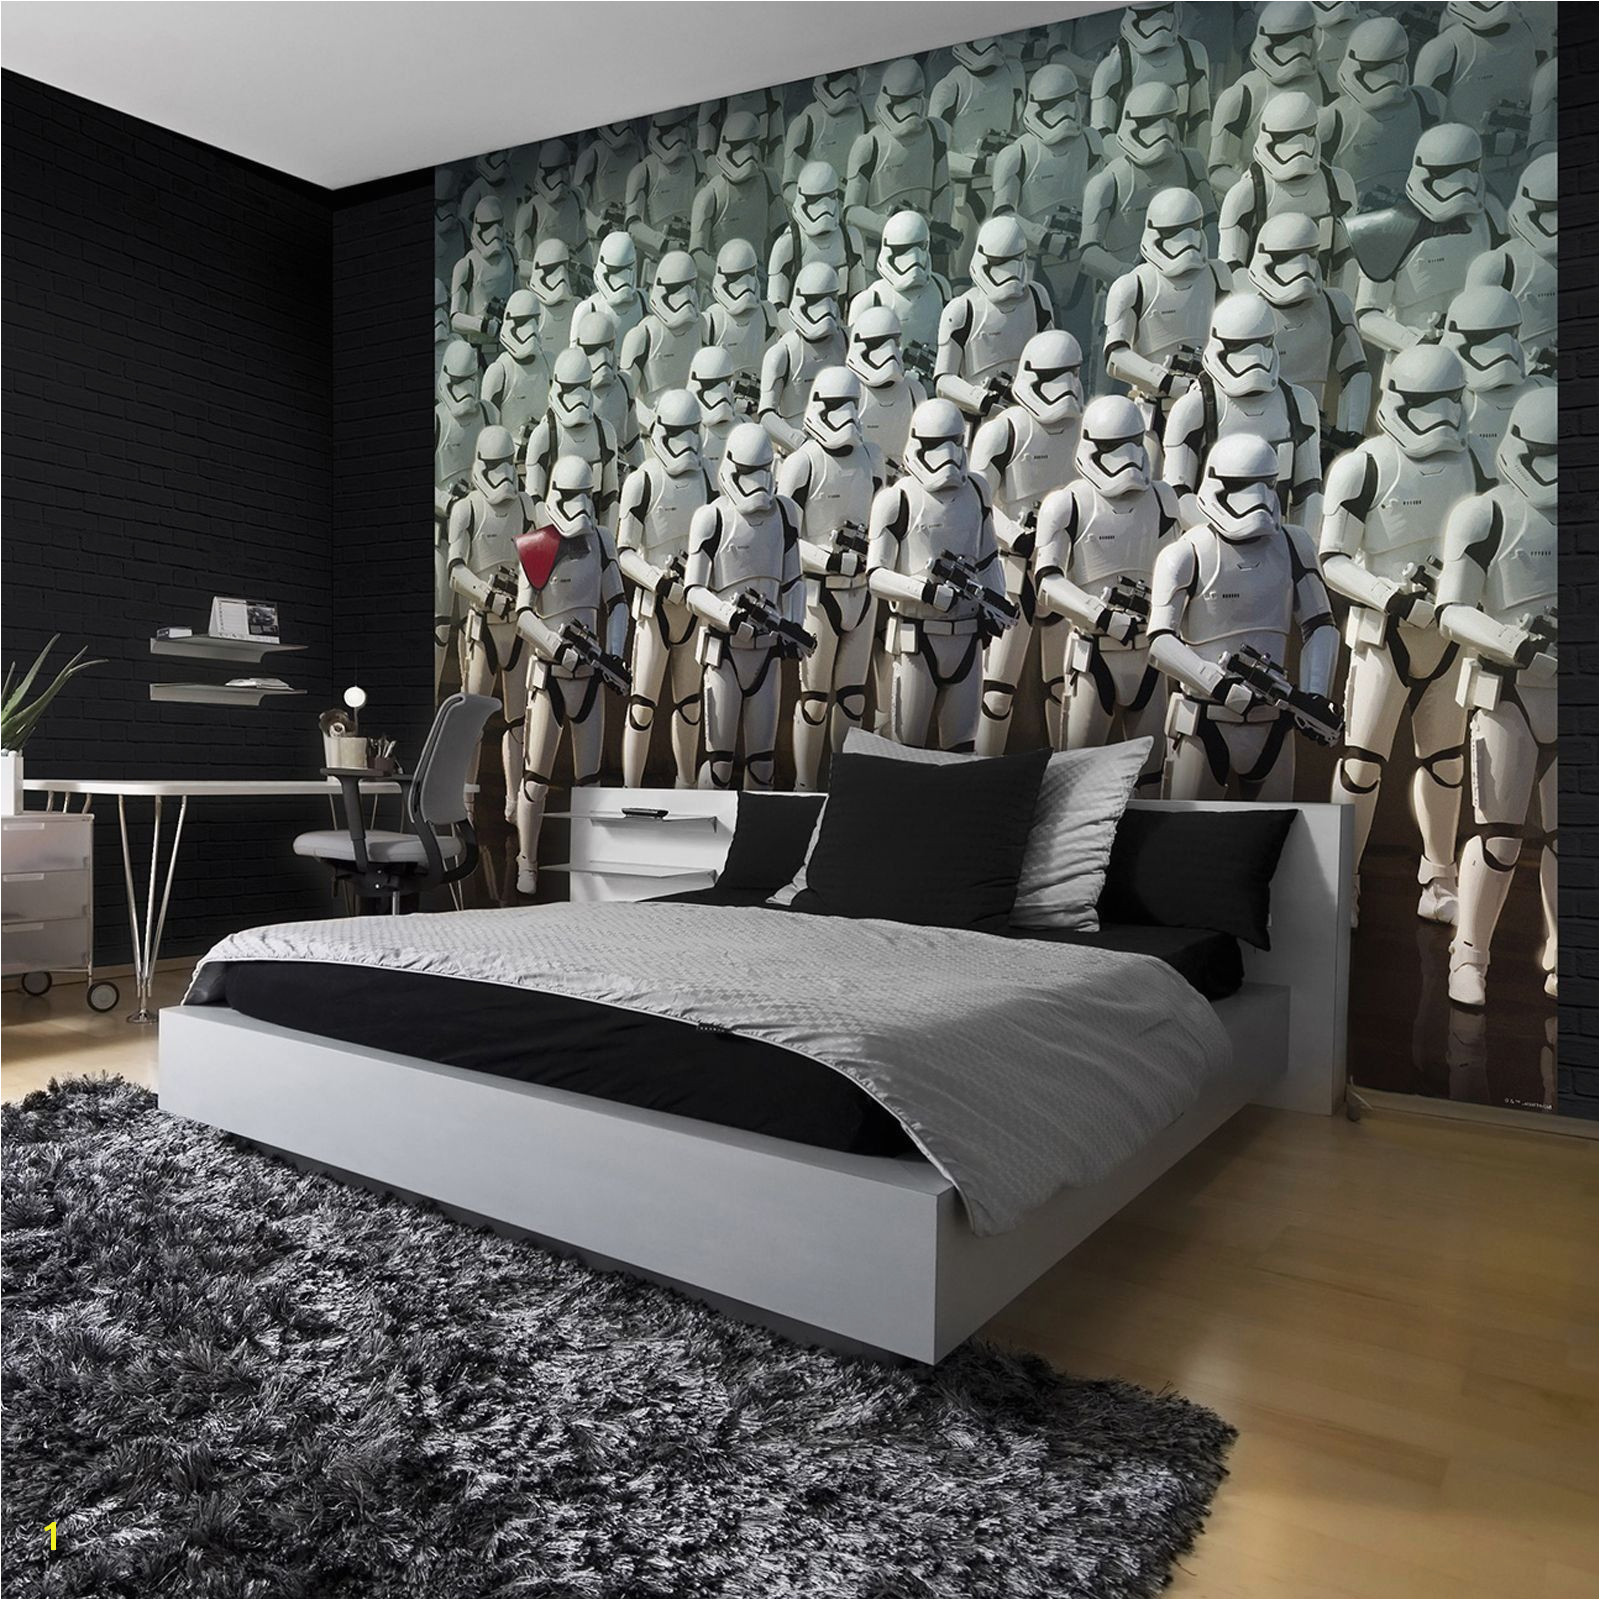 Star Wars Wall Murals Wallpaper Star Wars Stormtrooper Wall Mural Dream Bedroom …